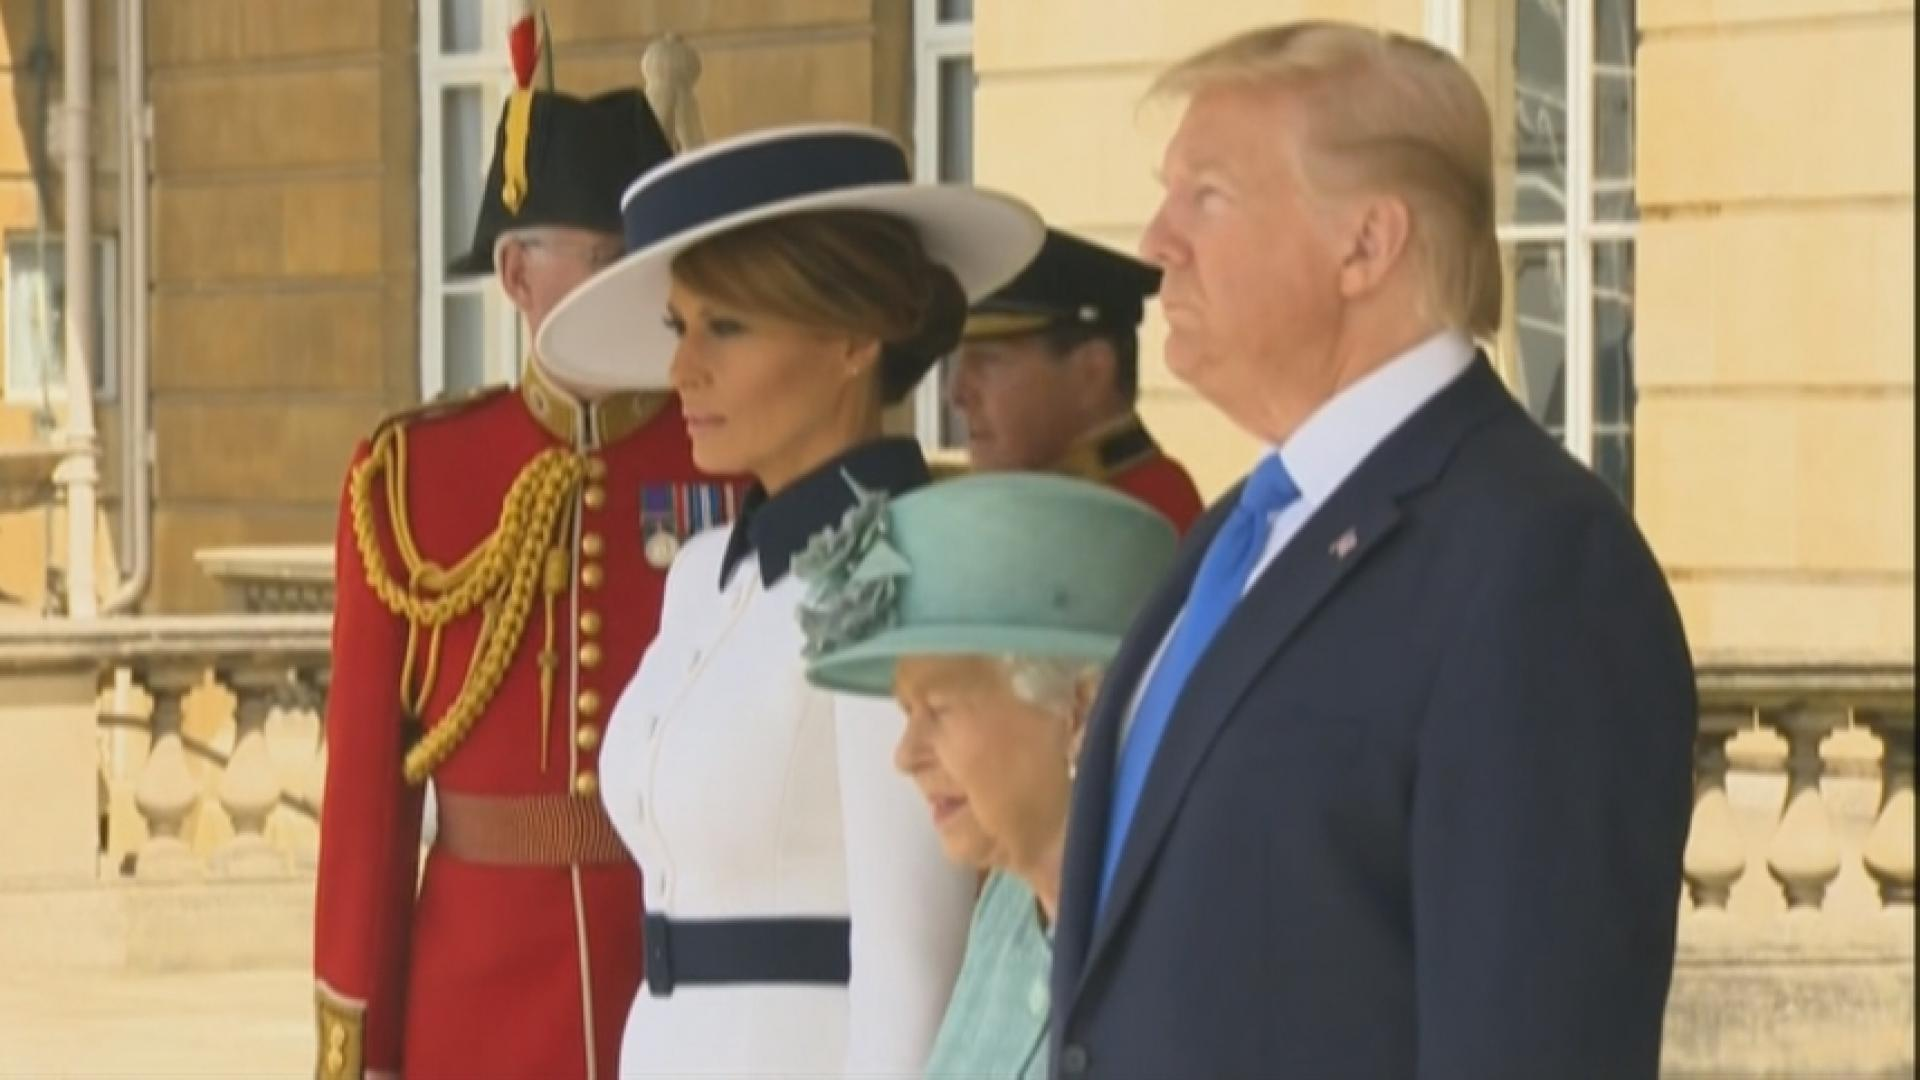 Trump met with protests during London visit